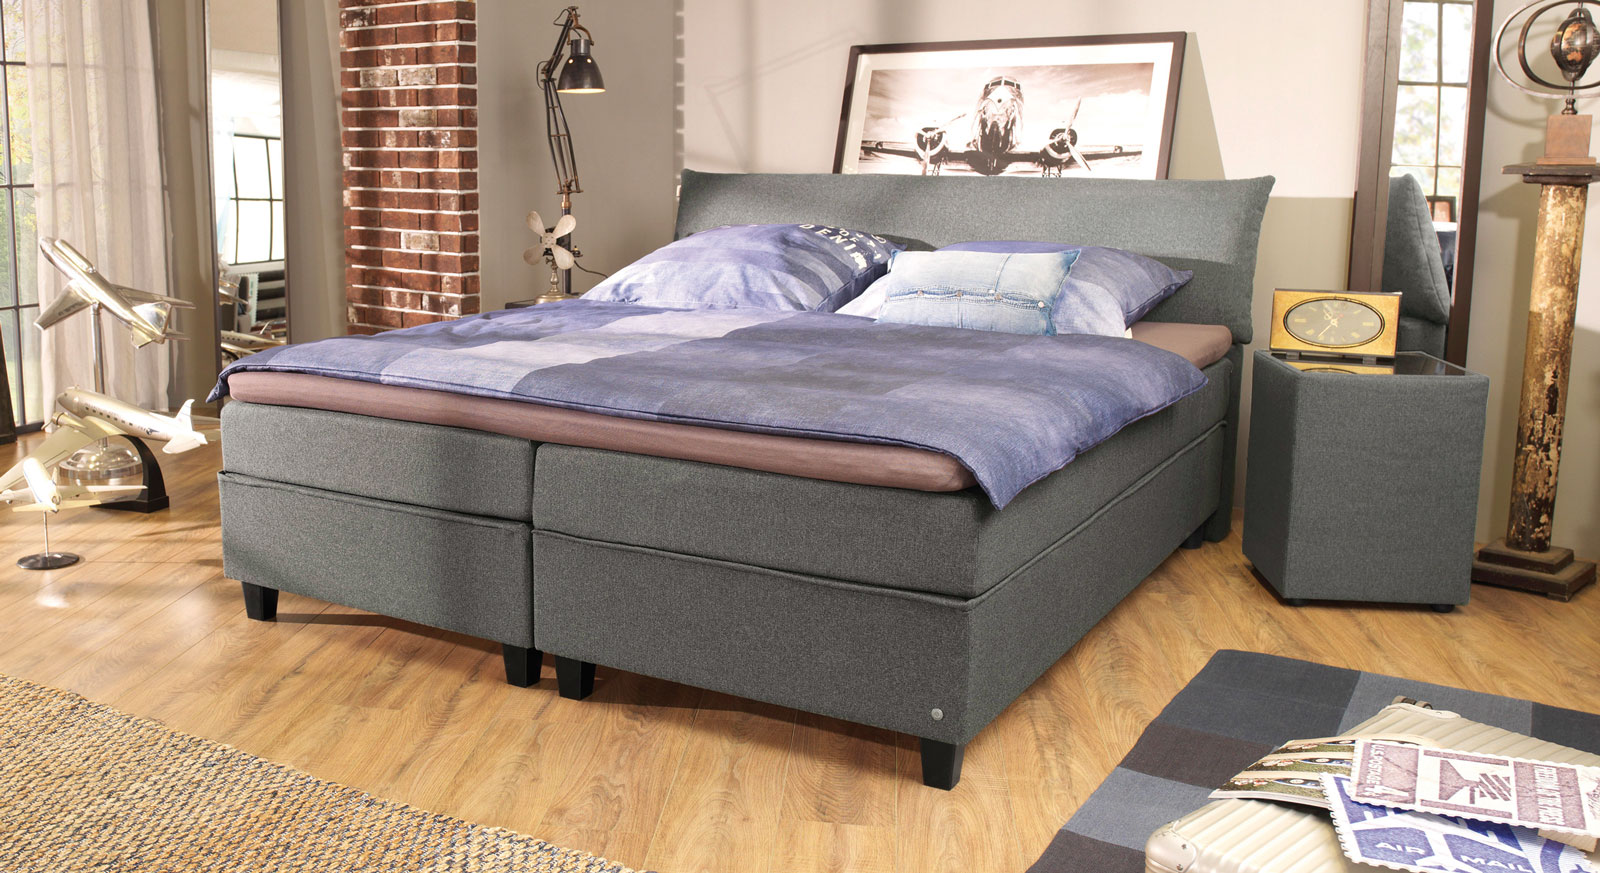 Boxspringbett Tom Tailor Color in Grau